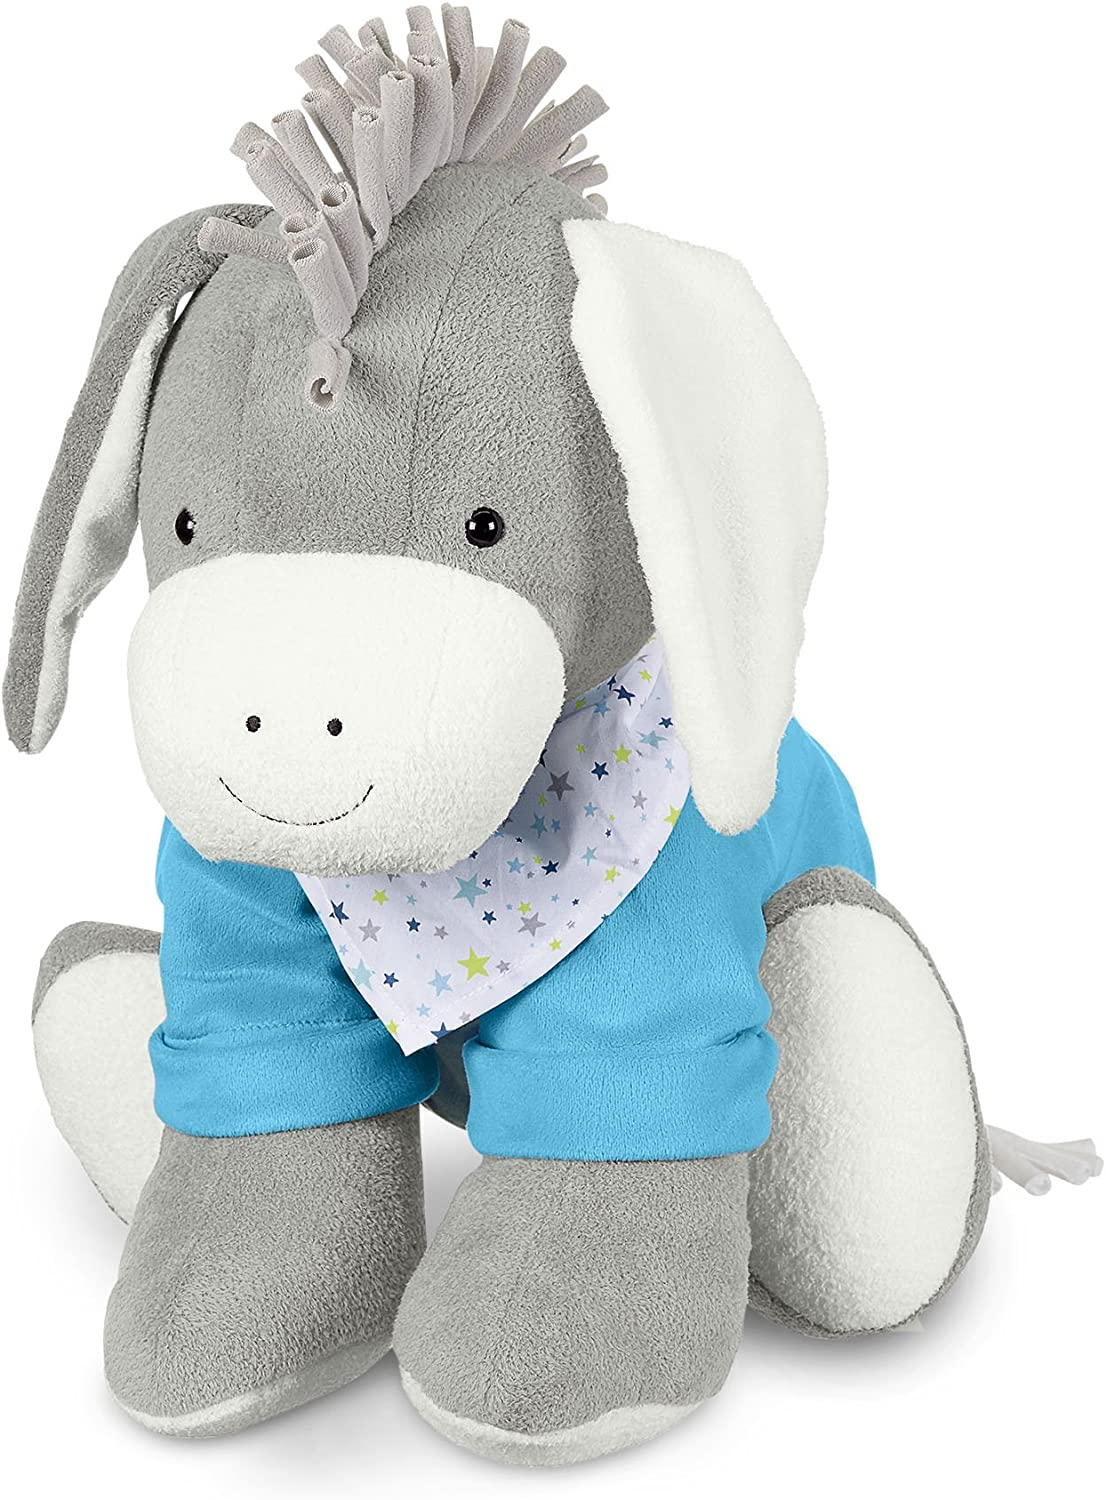 Sterntaler Toy Animal Erik, Integrated Rattle, Age  For Babies From Birth, 50 cm, Grey bluee